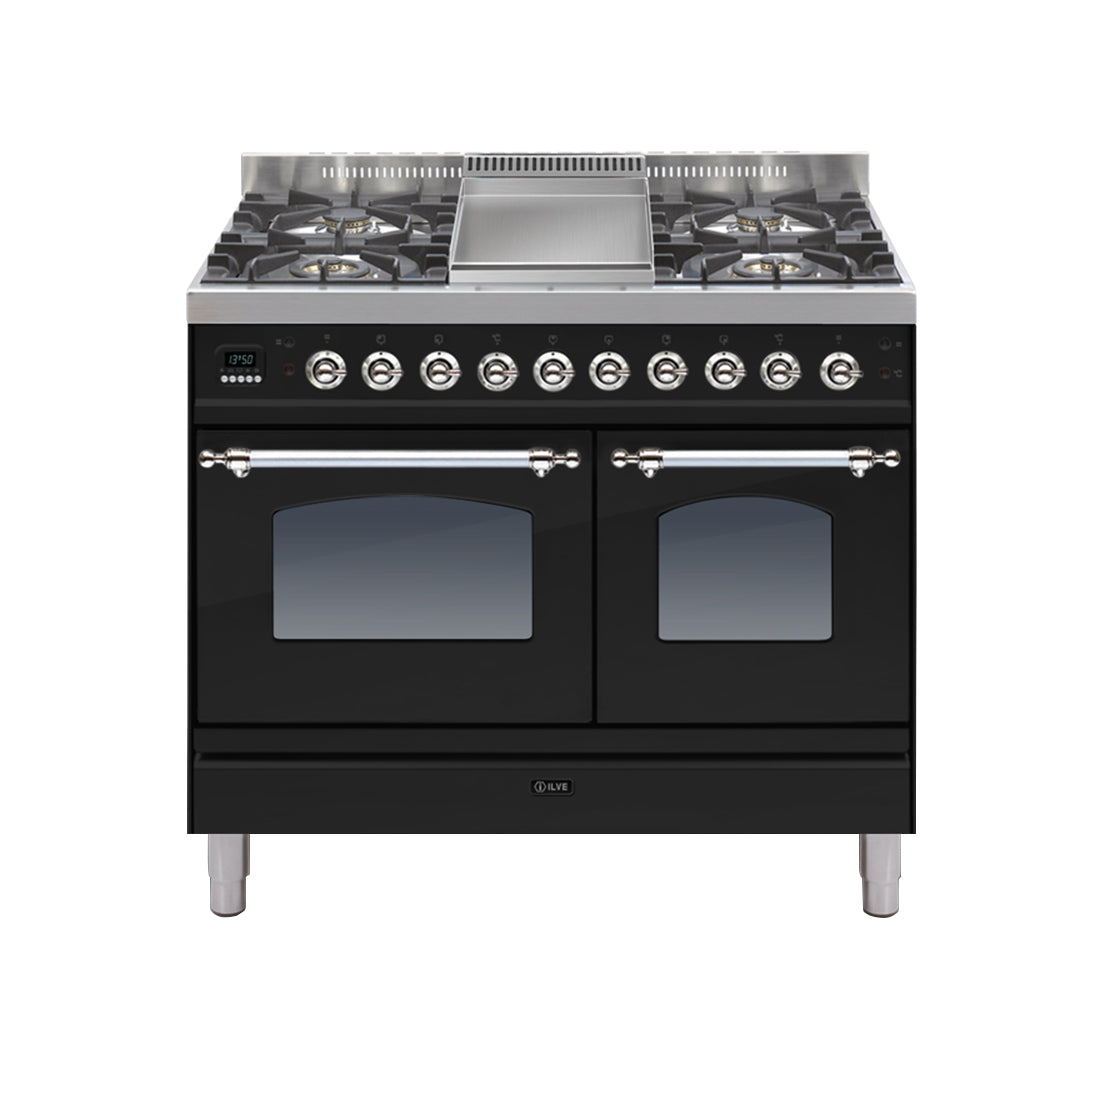 7527a81318 ILVE Range Cookers. View our Range Online. ILVE Appliances in the UK